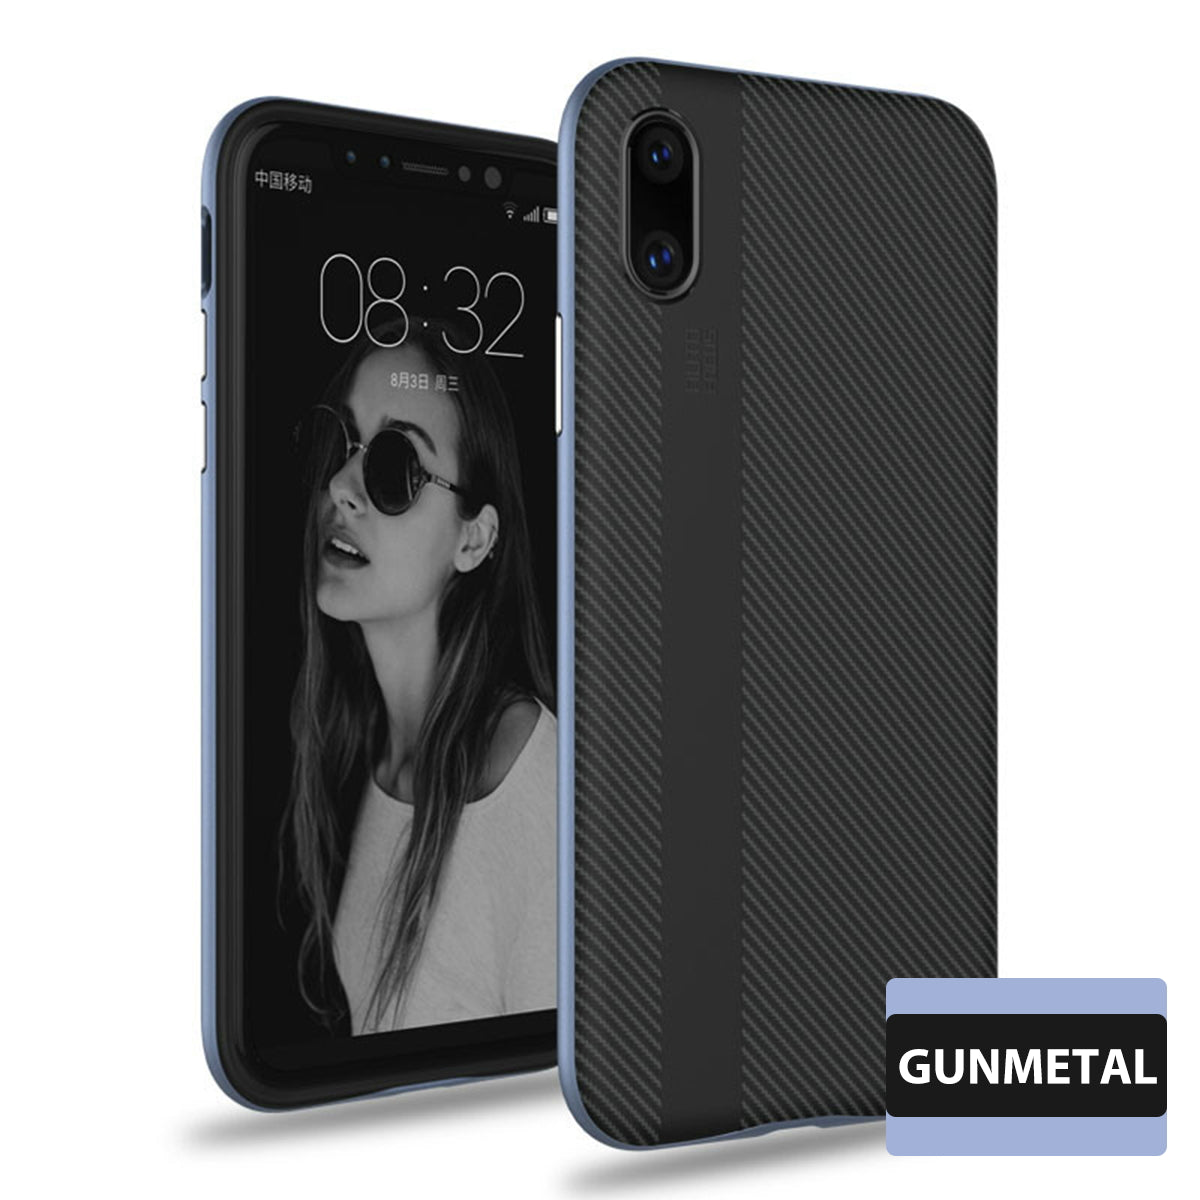 iPhone 7 Plus Case Cover Shockproof Hybrid Armor Hard Silicon Bumper